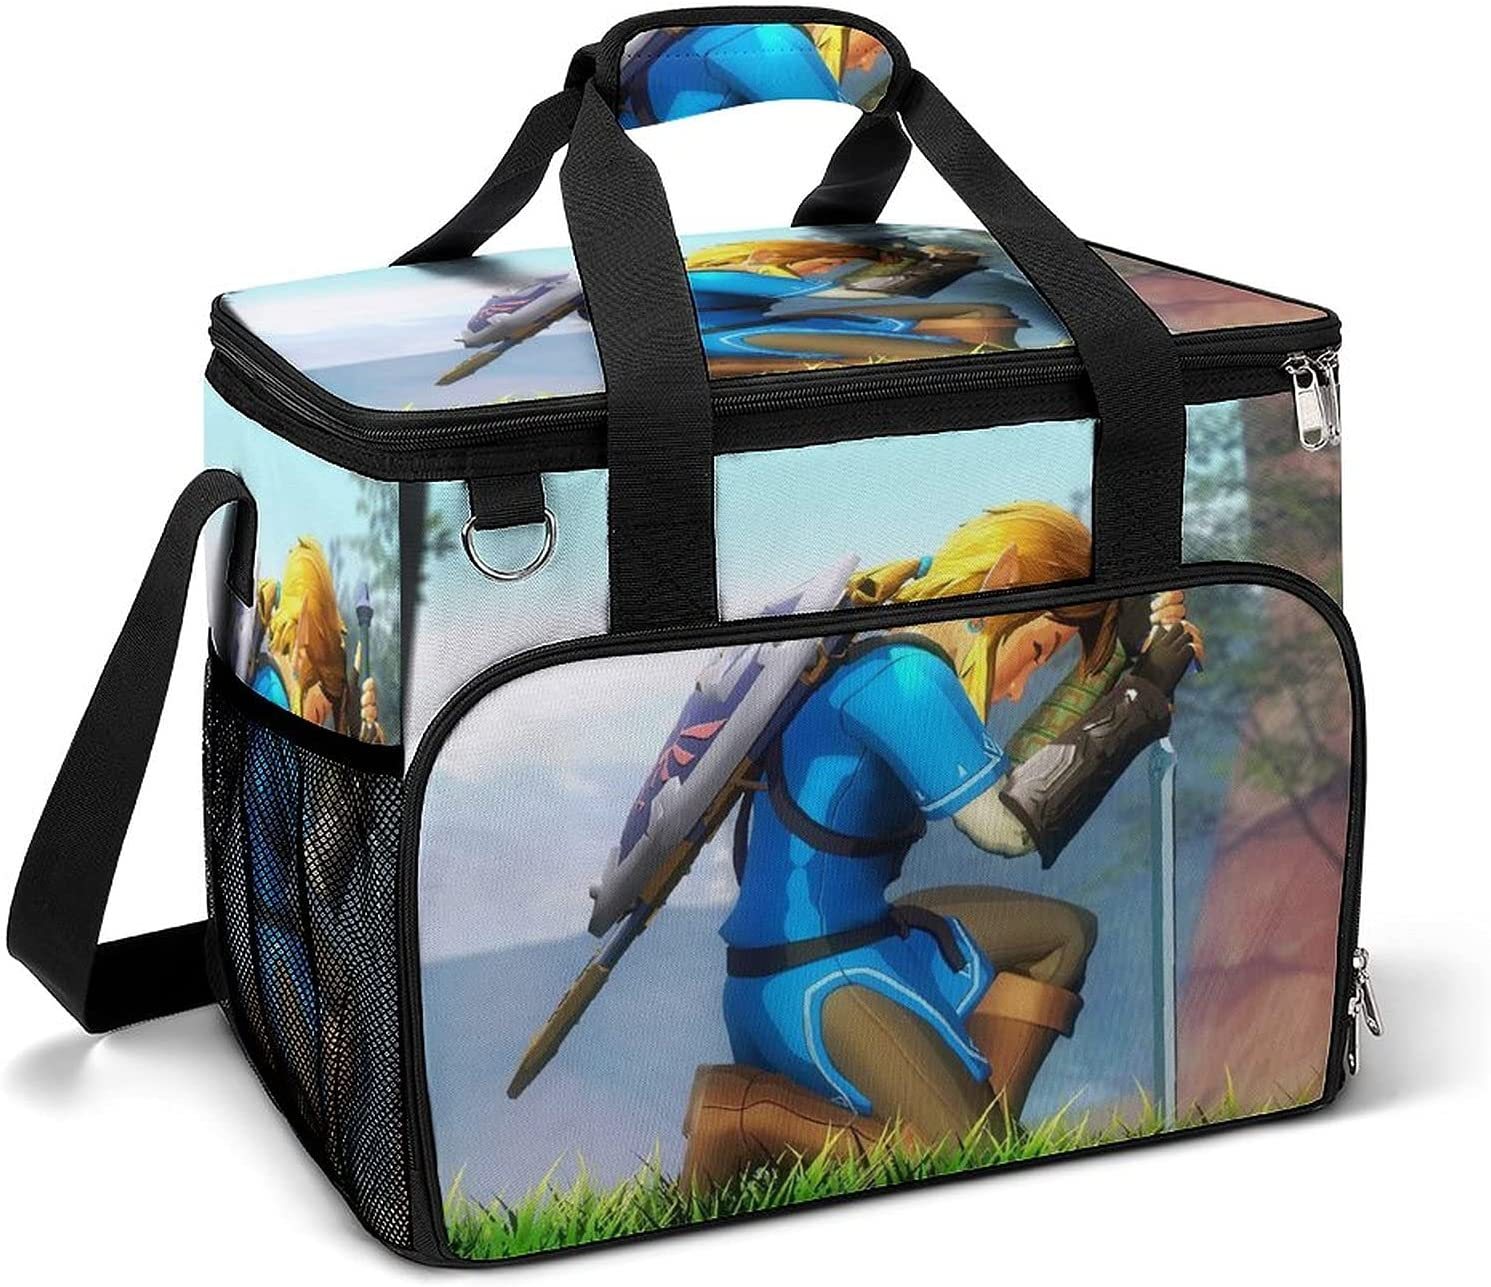 Large Anime Cooler Bag Lunch Airtight ice Camping pack Insu 5 ☆ very popular Max 86% OFF